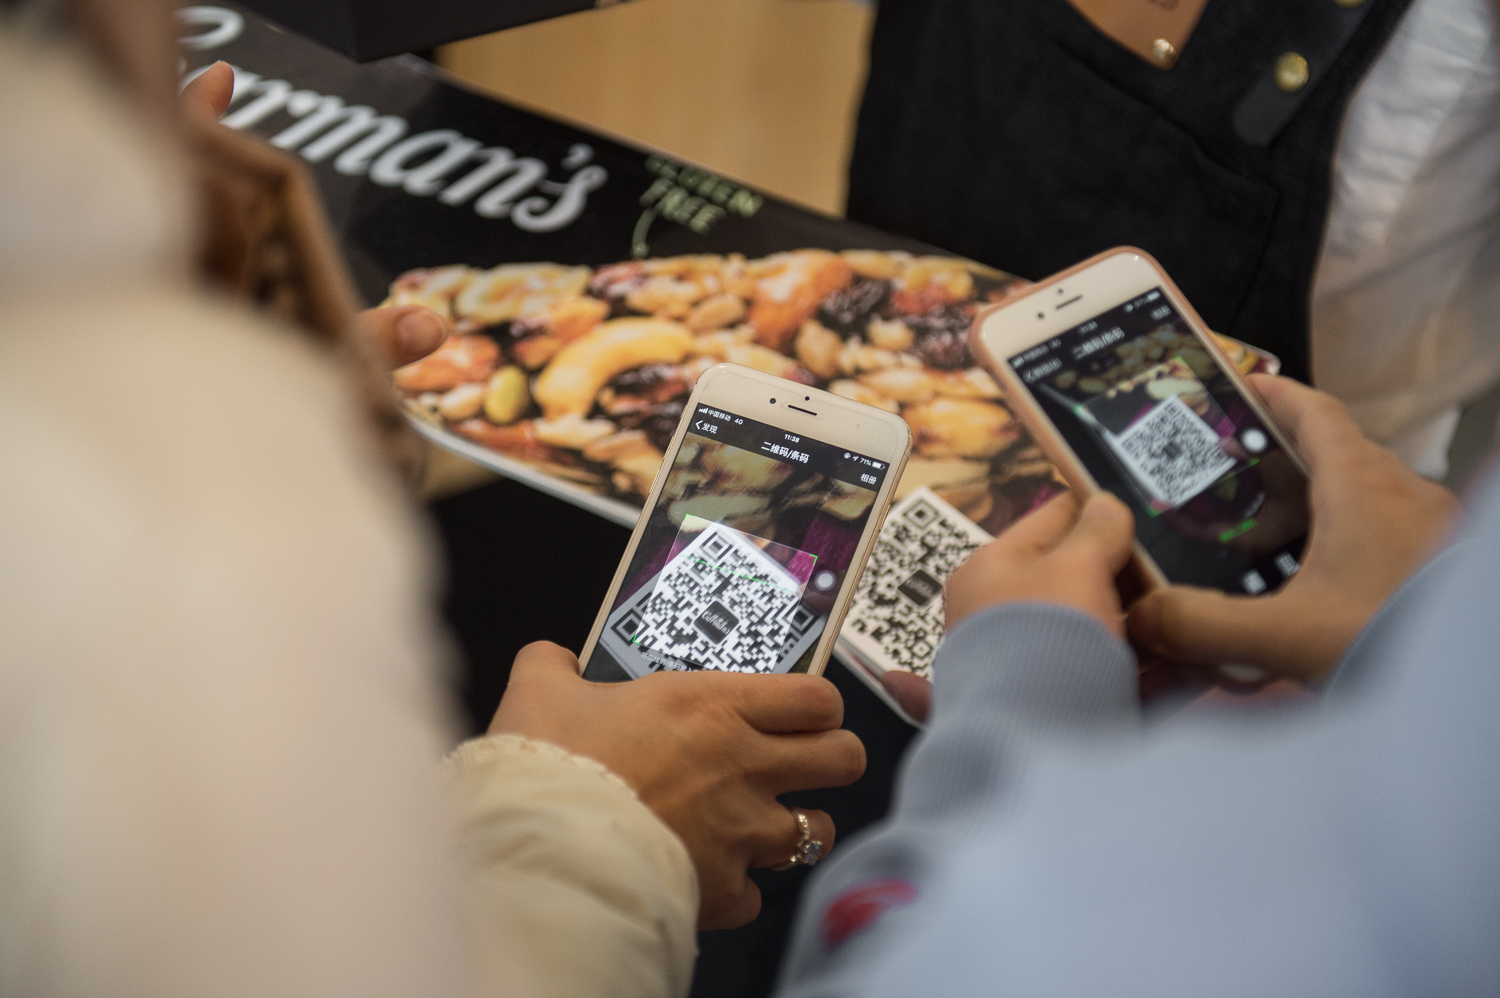 IMPACT - Established Carman's first local fans and generated brand awareness amongst target consumers in Shanghai